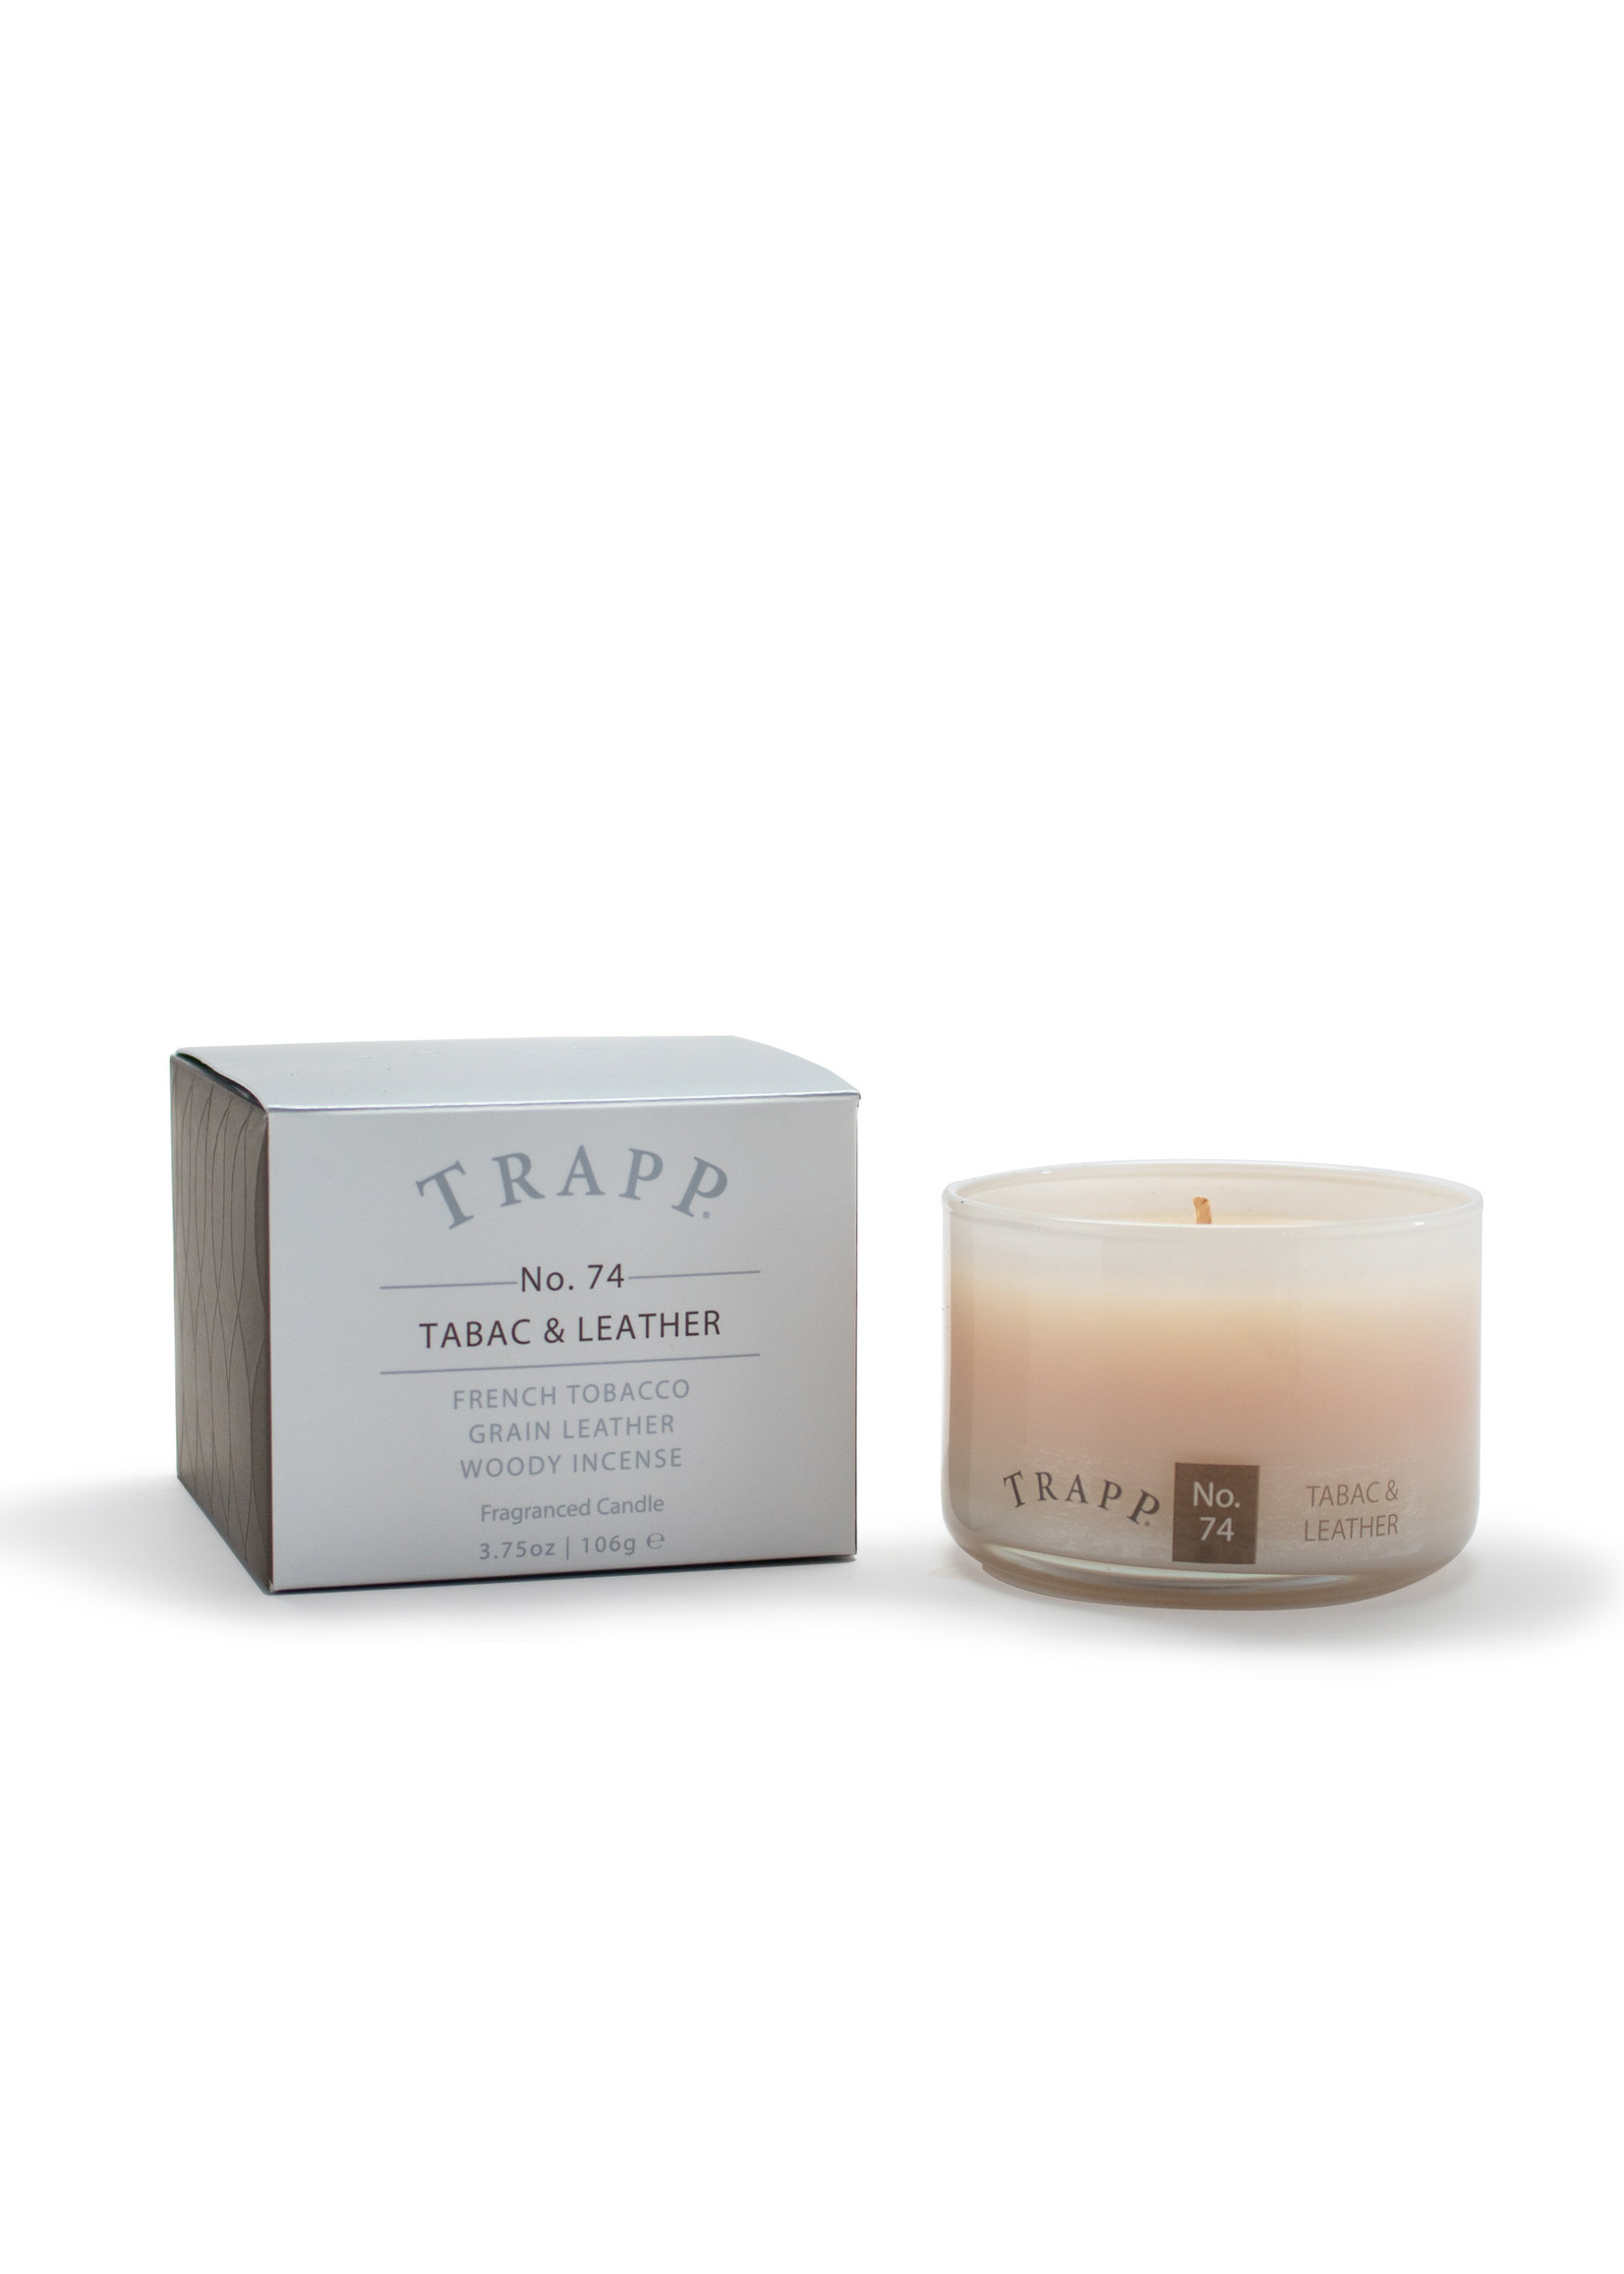 Trapp Candles Ambiance Collection - No. 74 Tabac & Leather - 3.75 oz. Poured Candle